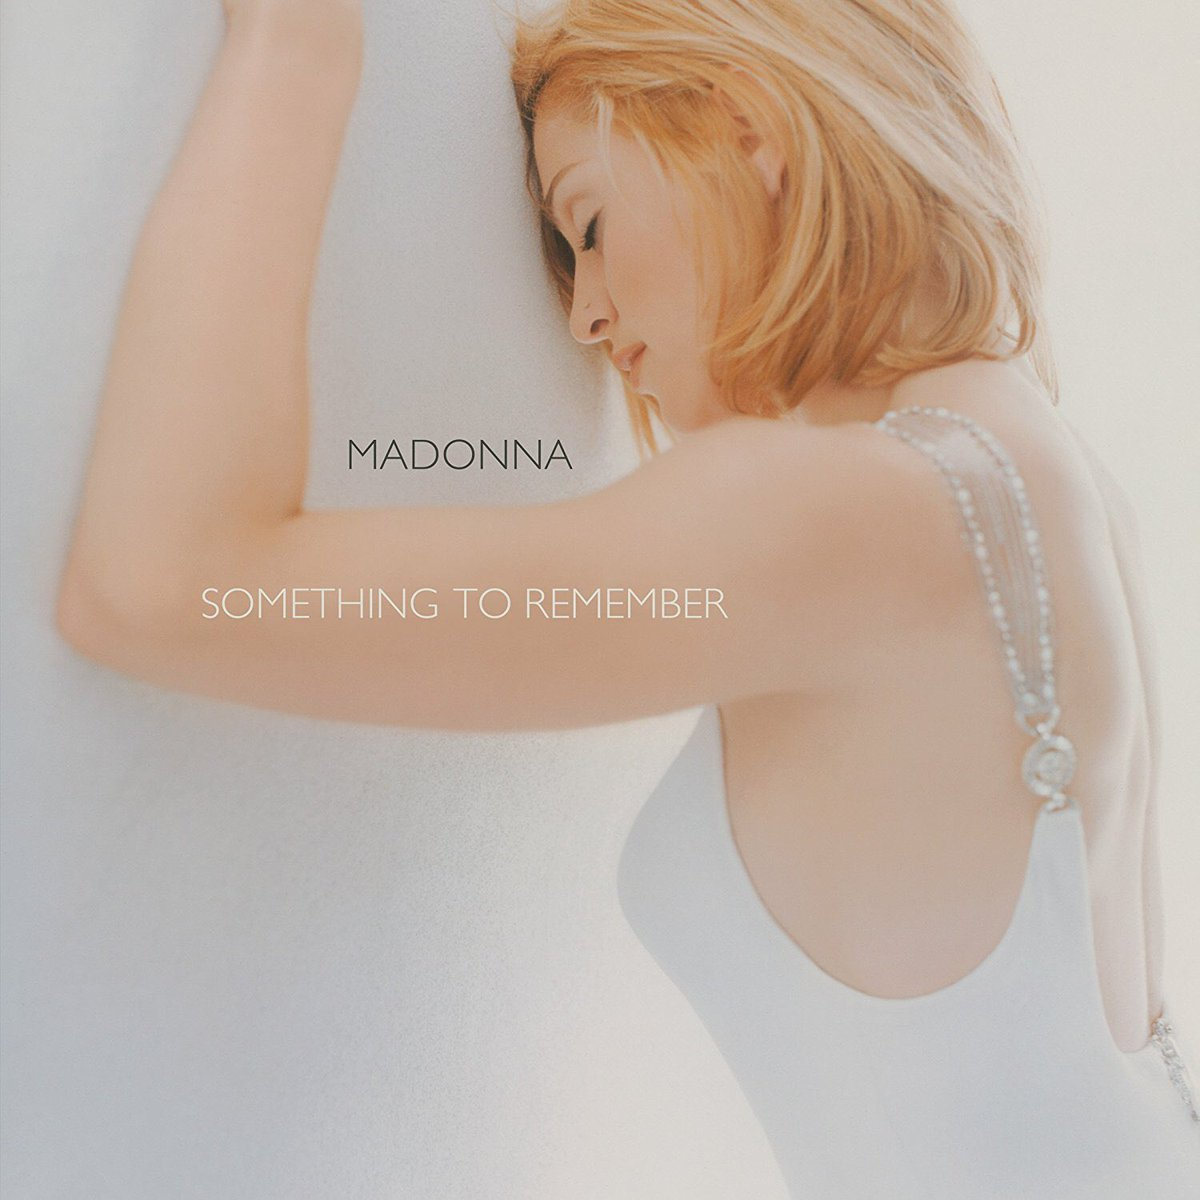 November 7, 1995 - The Something To Remember album is in stores. What is your favorite Madonna ballad? #MadonnaStory https://t.co/btS3CS7JGb